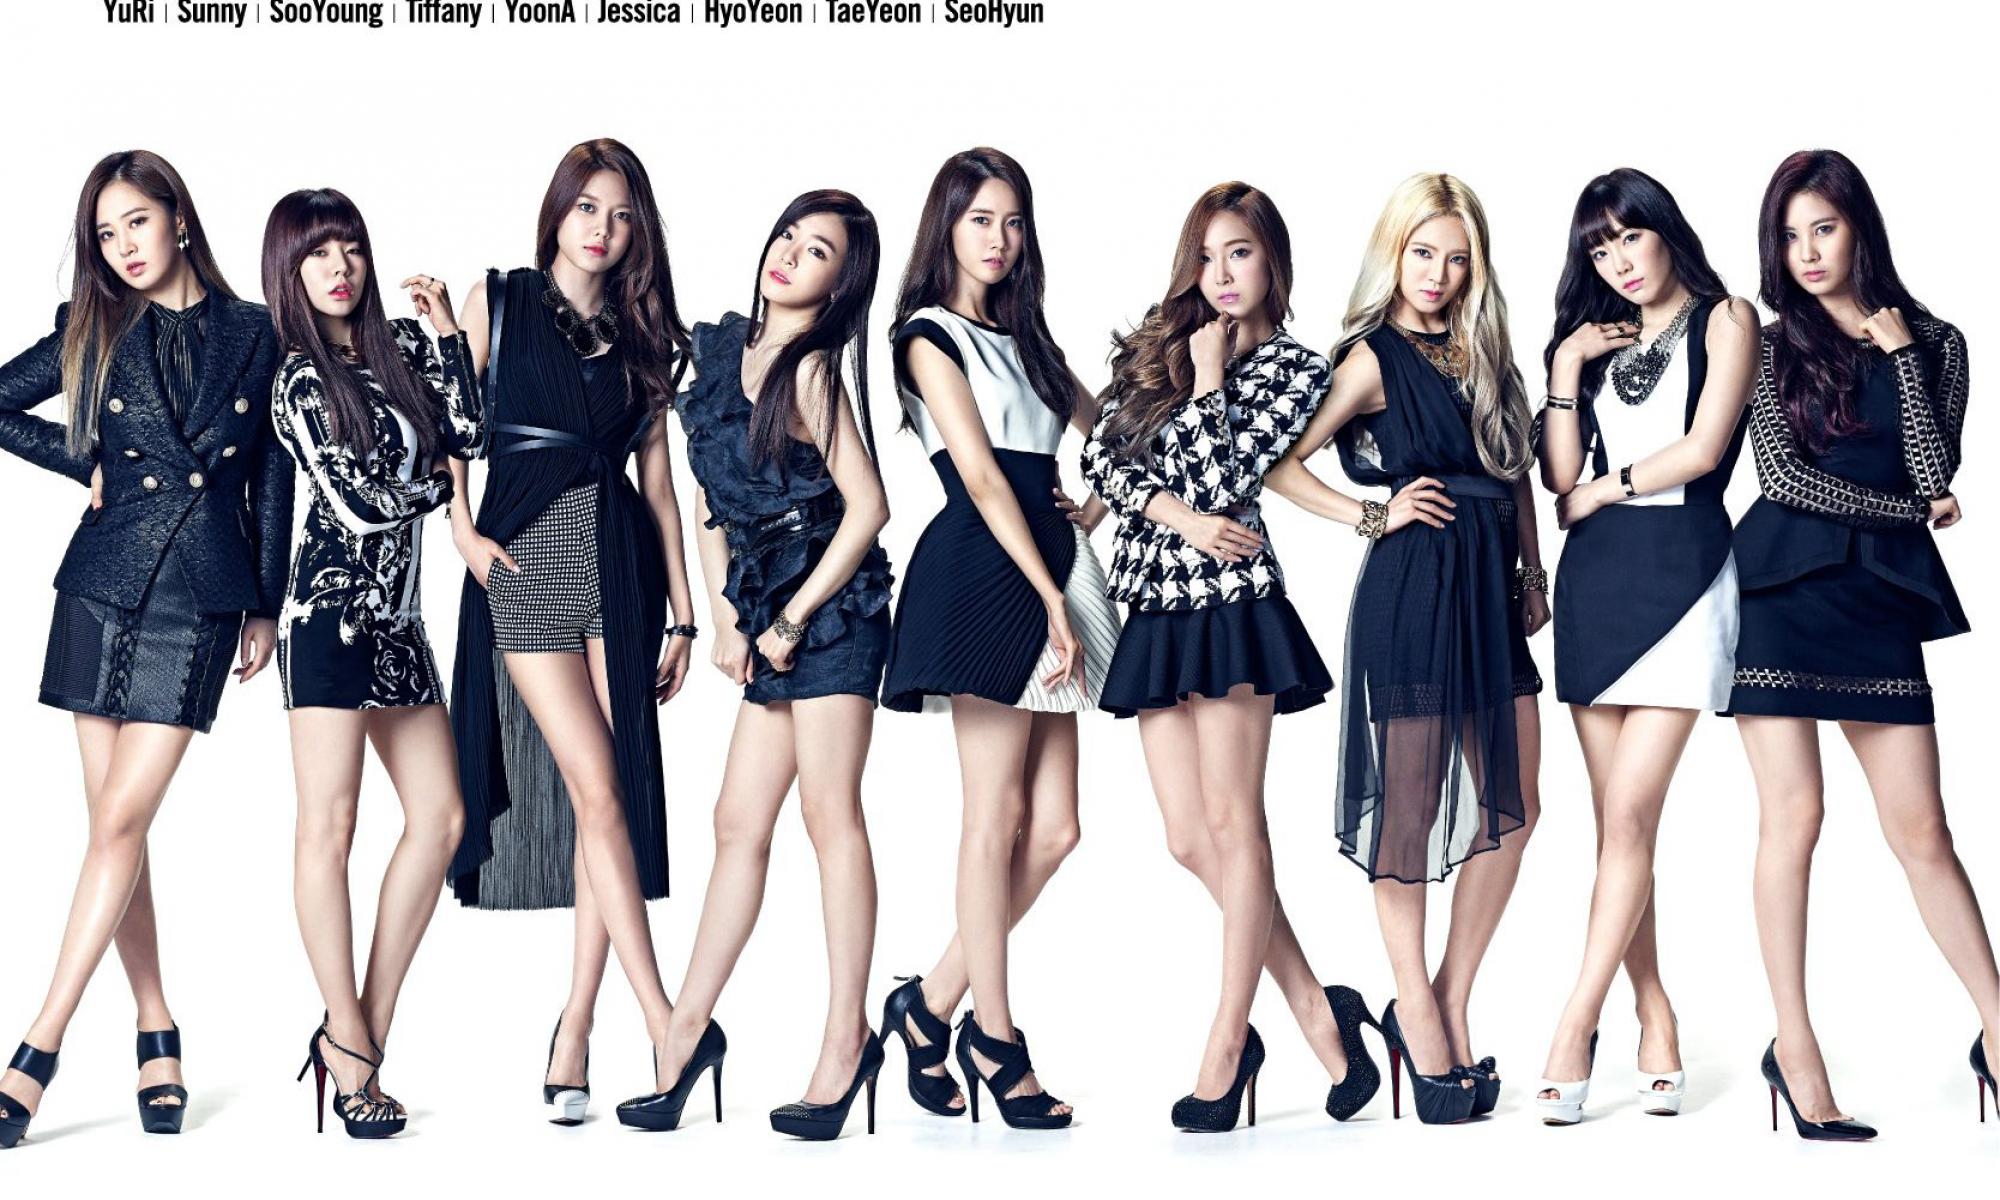 Girls' Generation drops hints about musical comeback this year